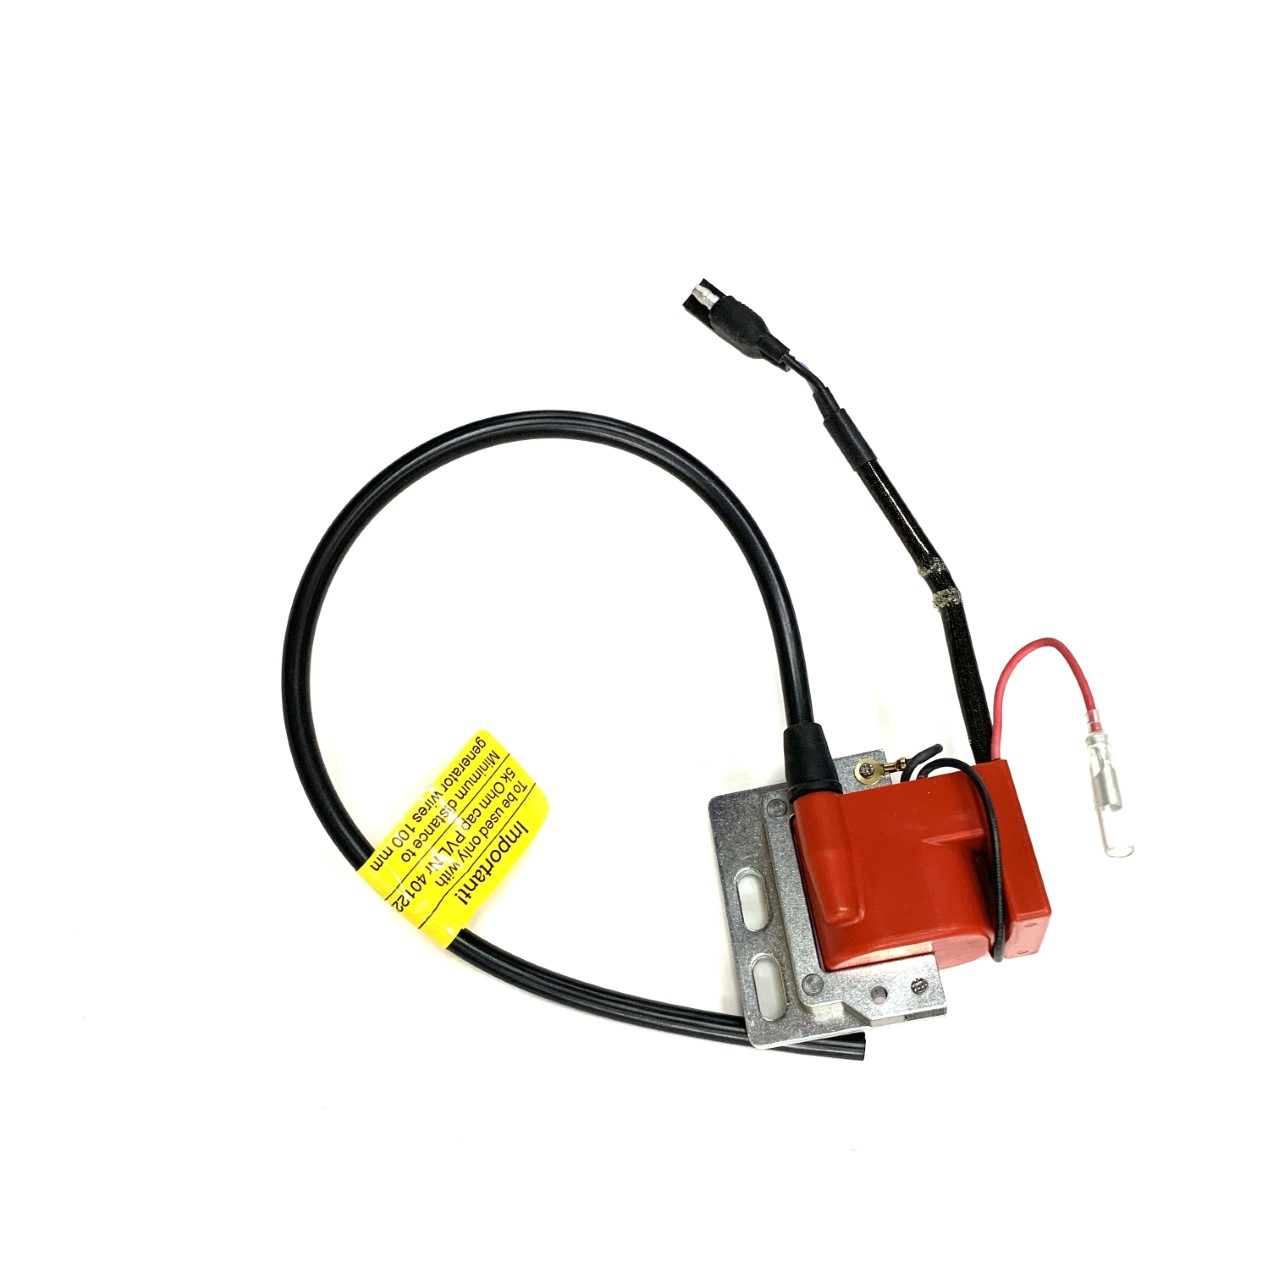 PVL IGNITION COIL DIGITAL WITH REV LIMITER